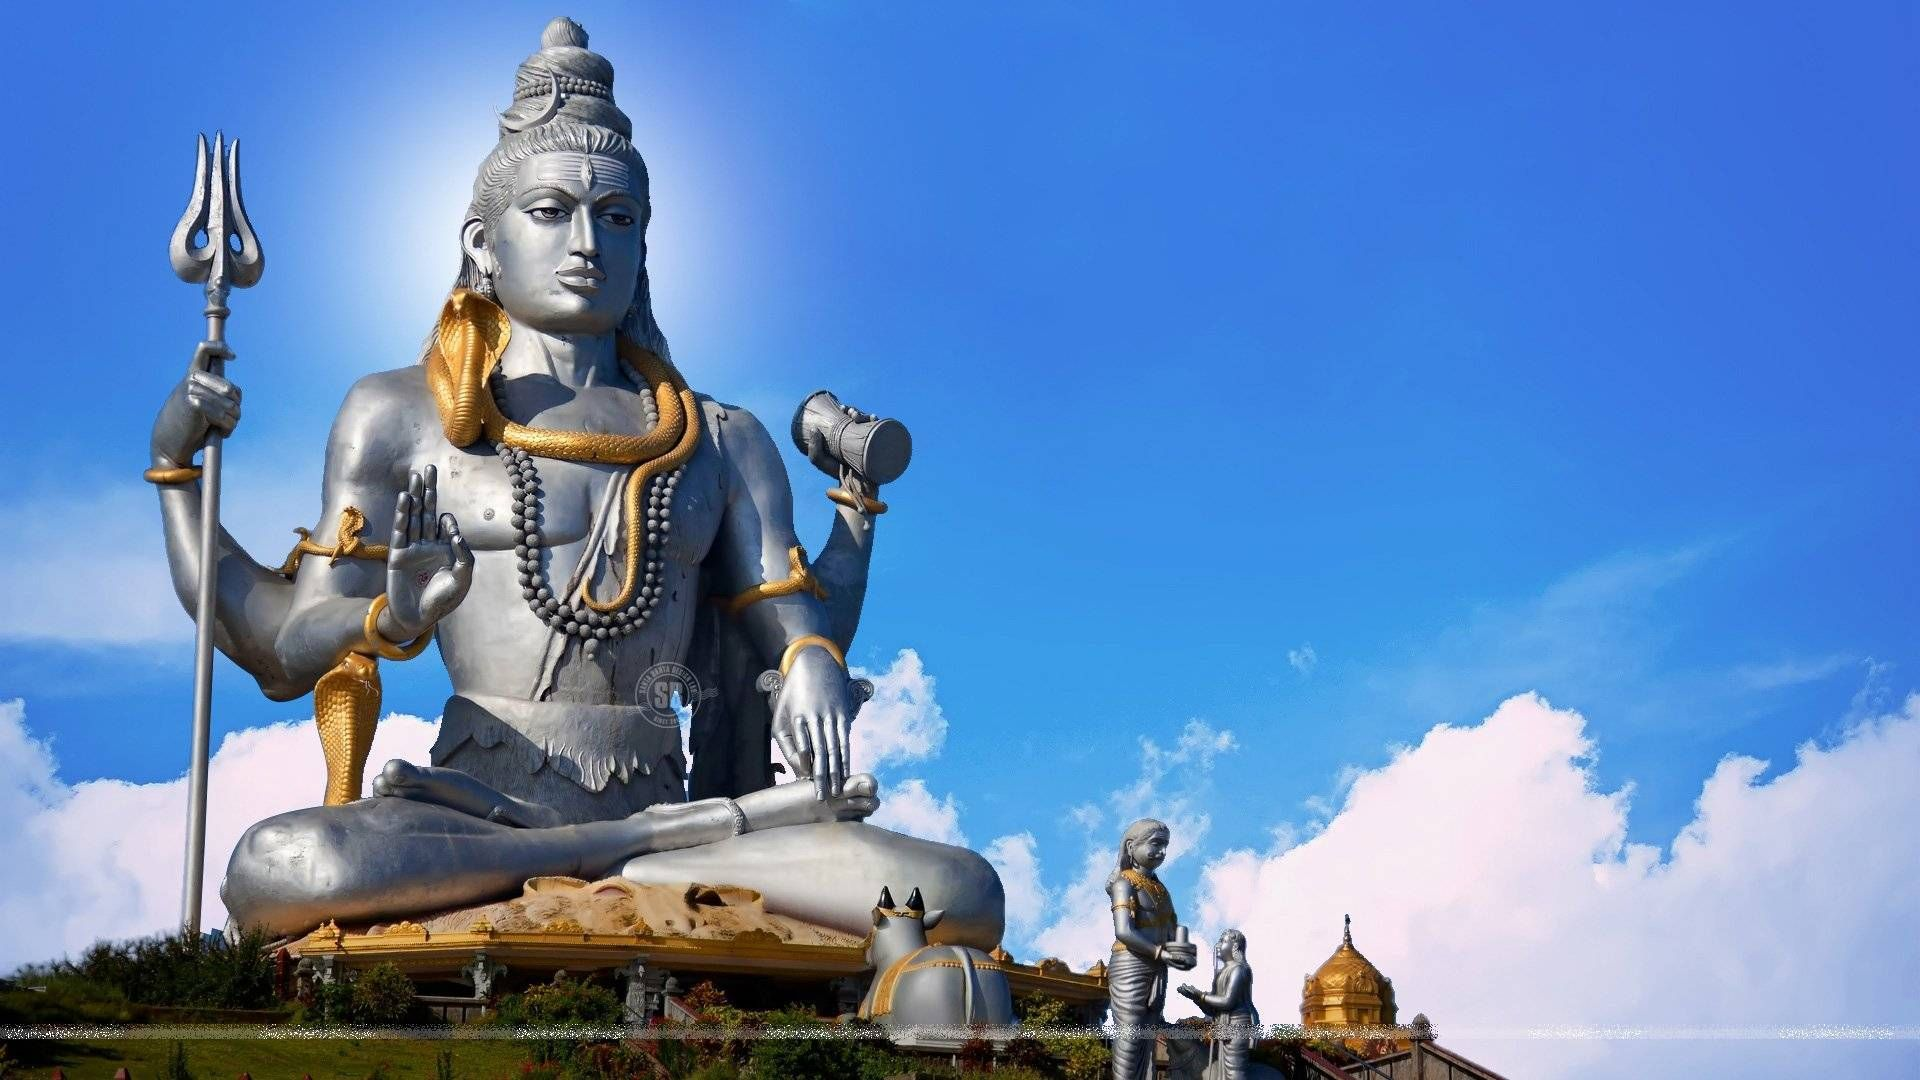 Download Lord Shiva Live Wallpaper Hd For Android Lord Shiva Live Shiva Religiya